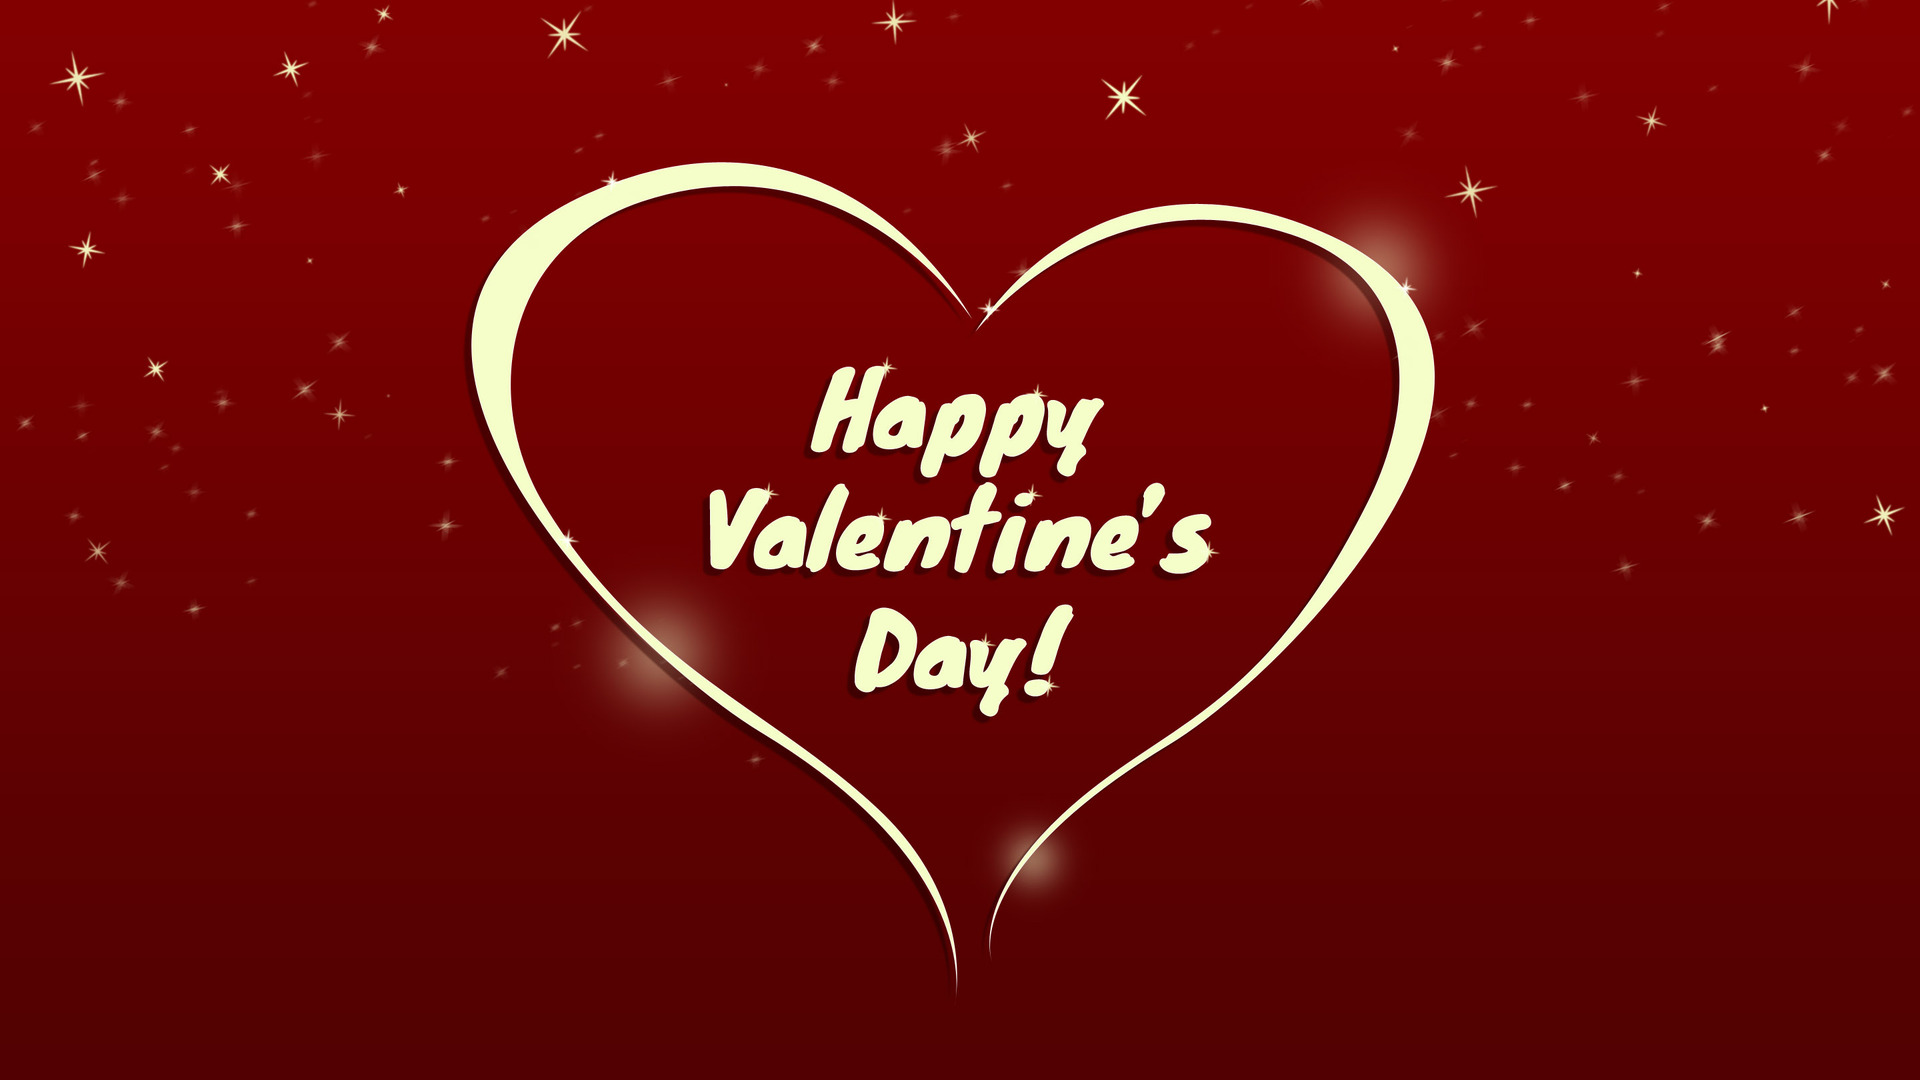 Best Hd Valentines Day Images For Mobile Pc Desktop Laptop